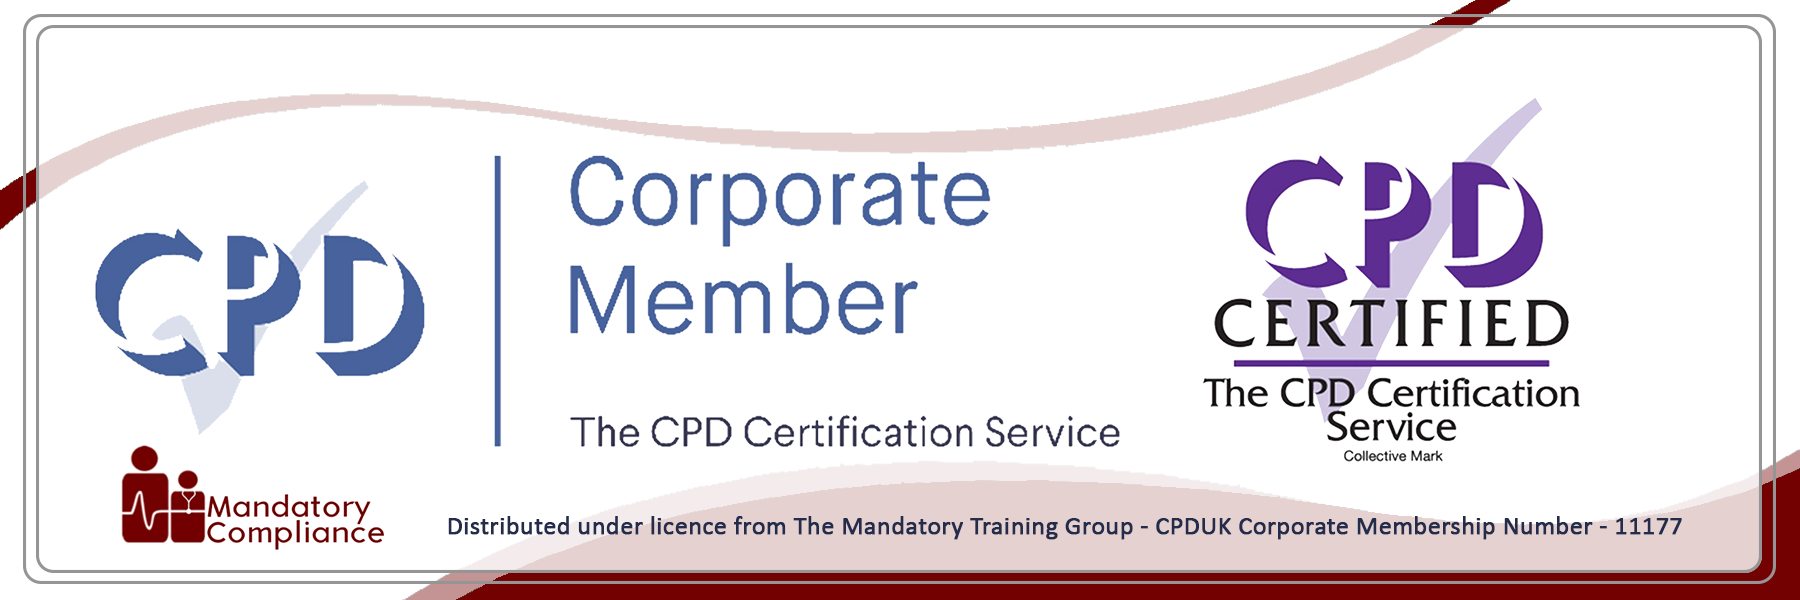 Emotional Intelligence - Online Training Course - CPDUK Accredited - Mandatory Compliance UK -